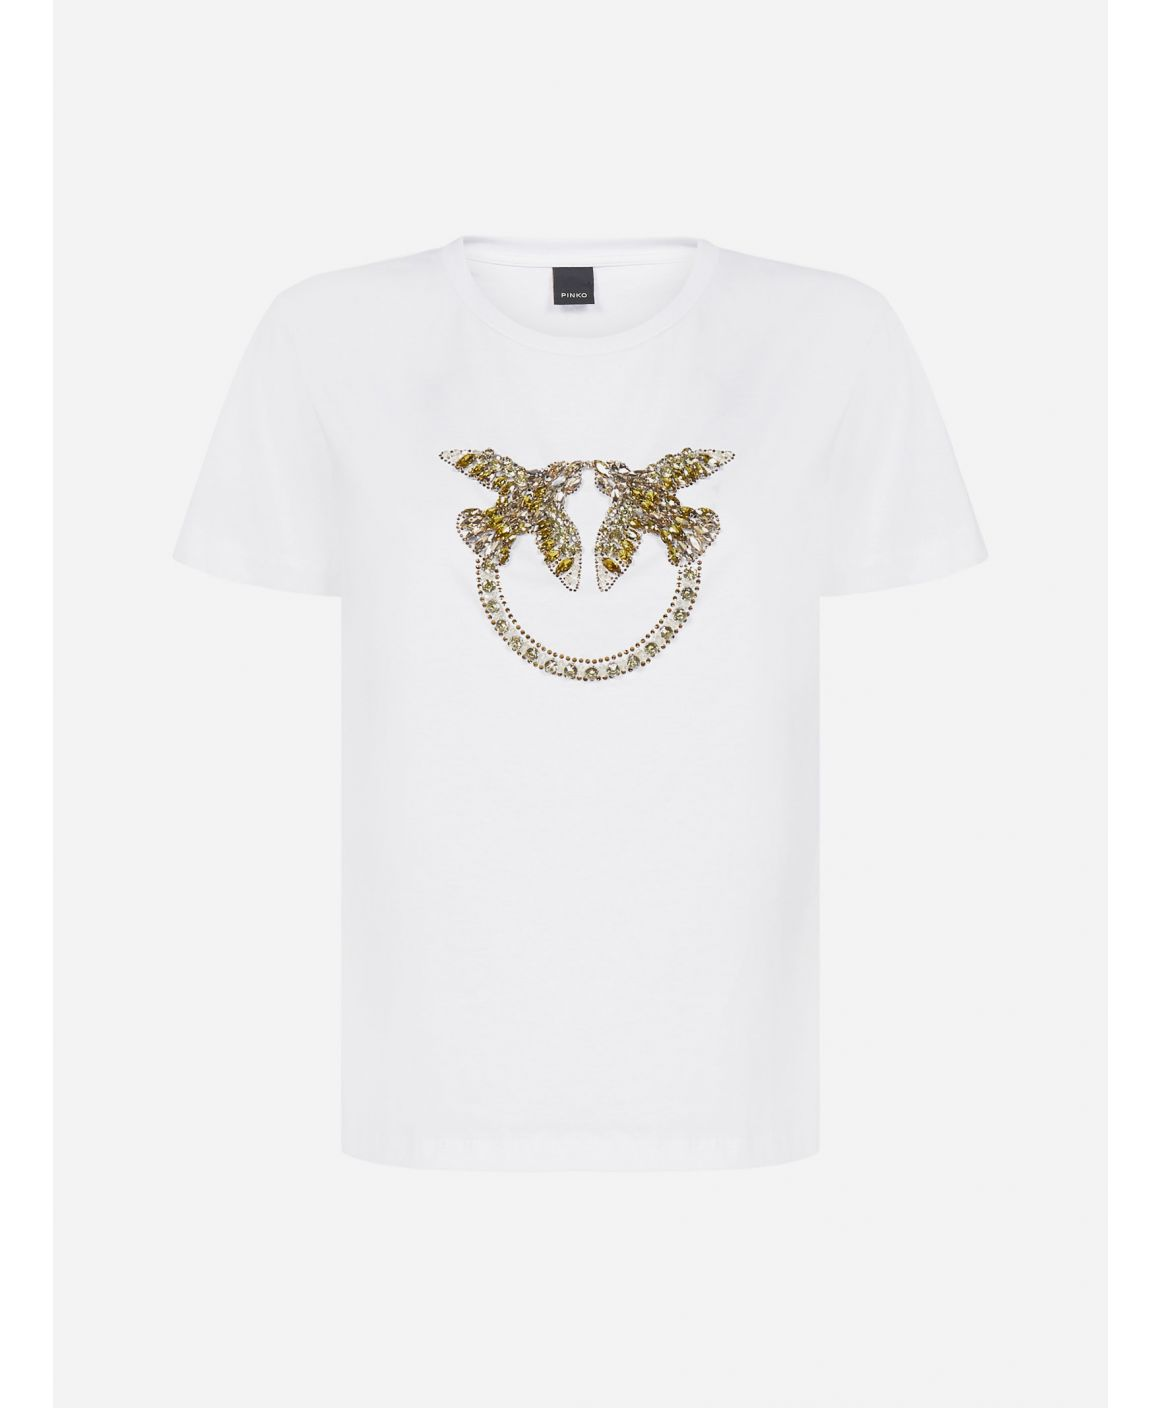 Quentin 1 crystals-logo cotton t-shirt